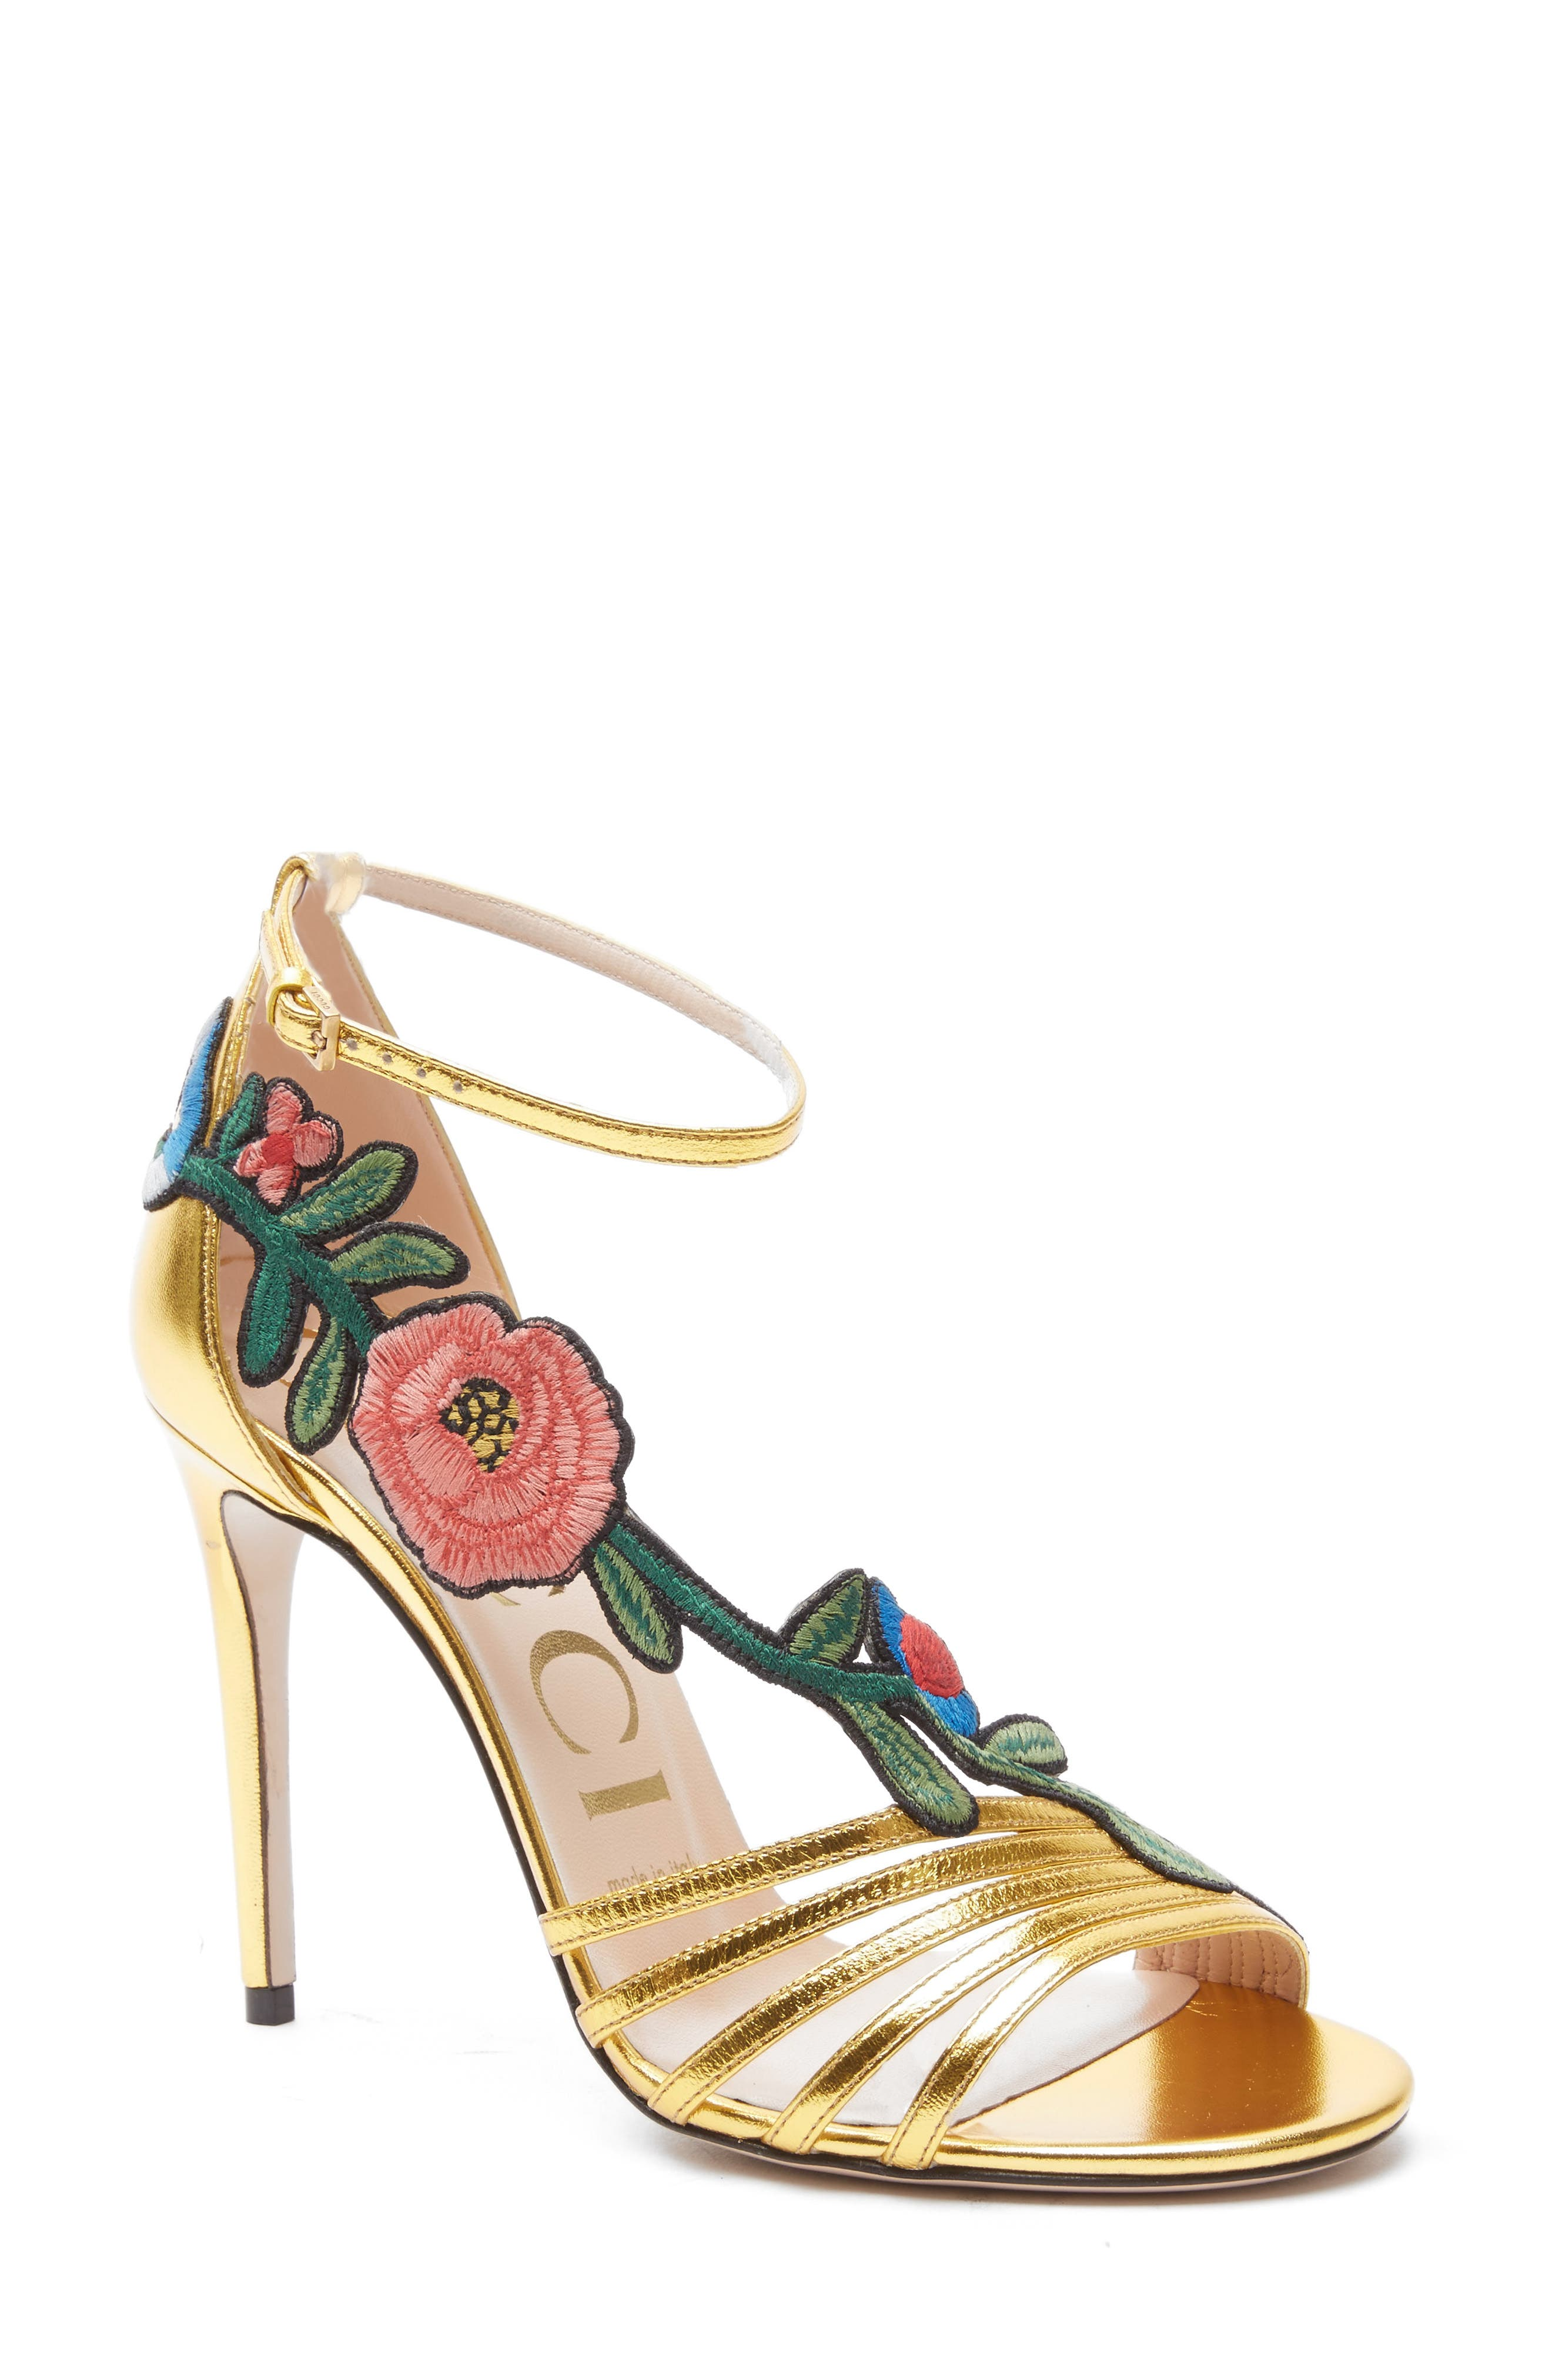 Alternate Image 1 Selected - Gucci Ophelia Floral Sandal (Women)